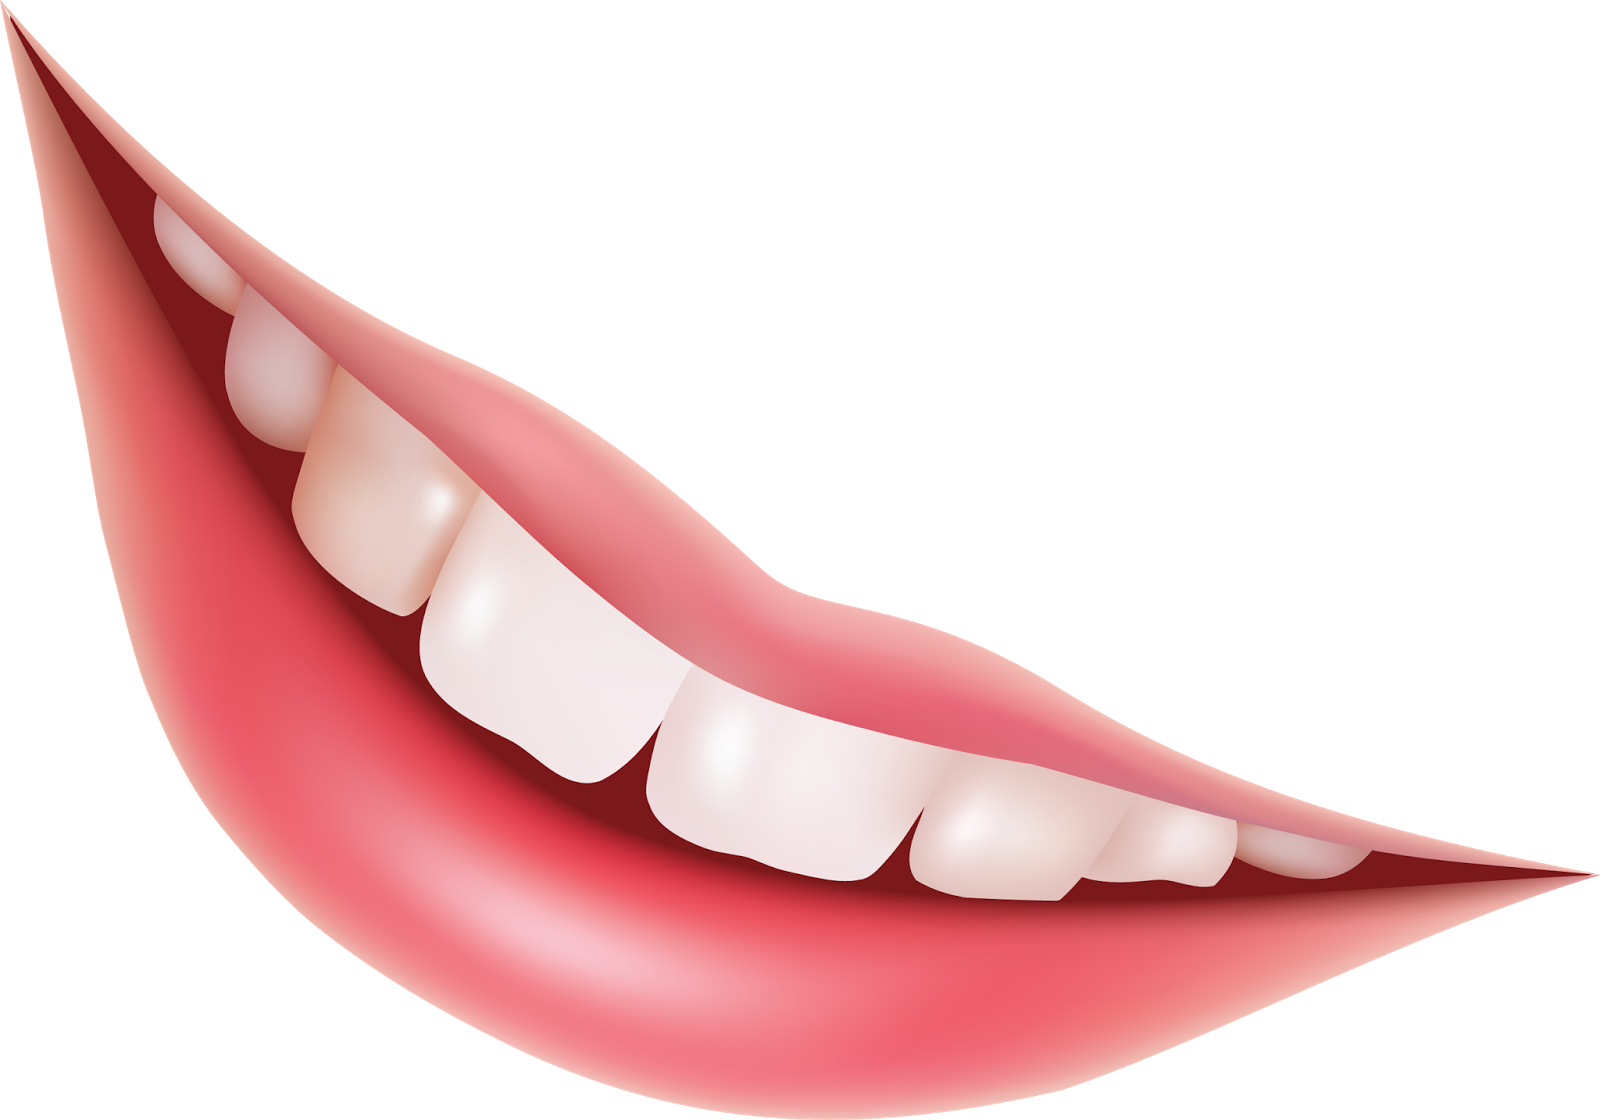 how smiling affects those around you The science of smiling  or a placebo saline injection that did not affect the facial muscles  and smiling actually makes those around you cheerier as well.